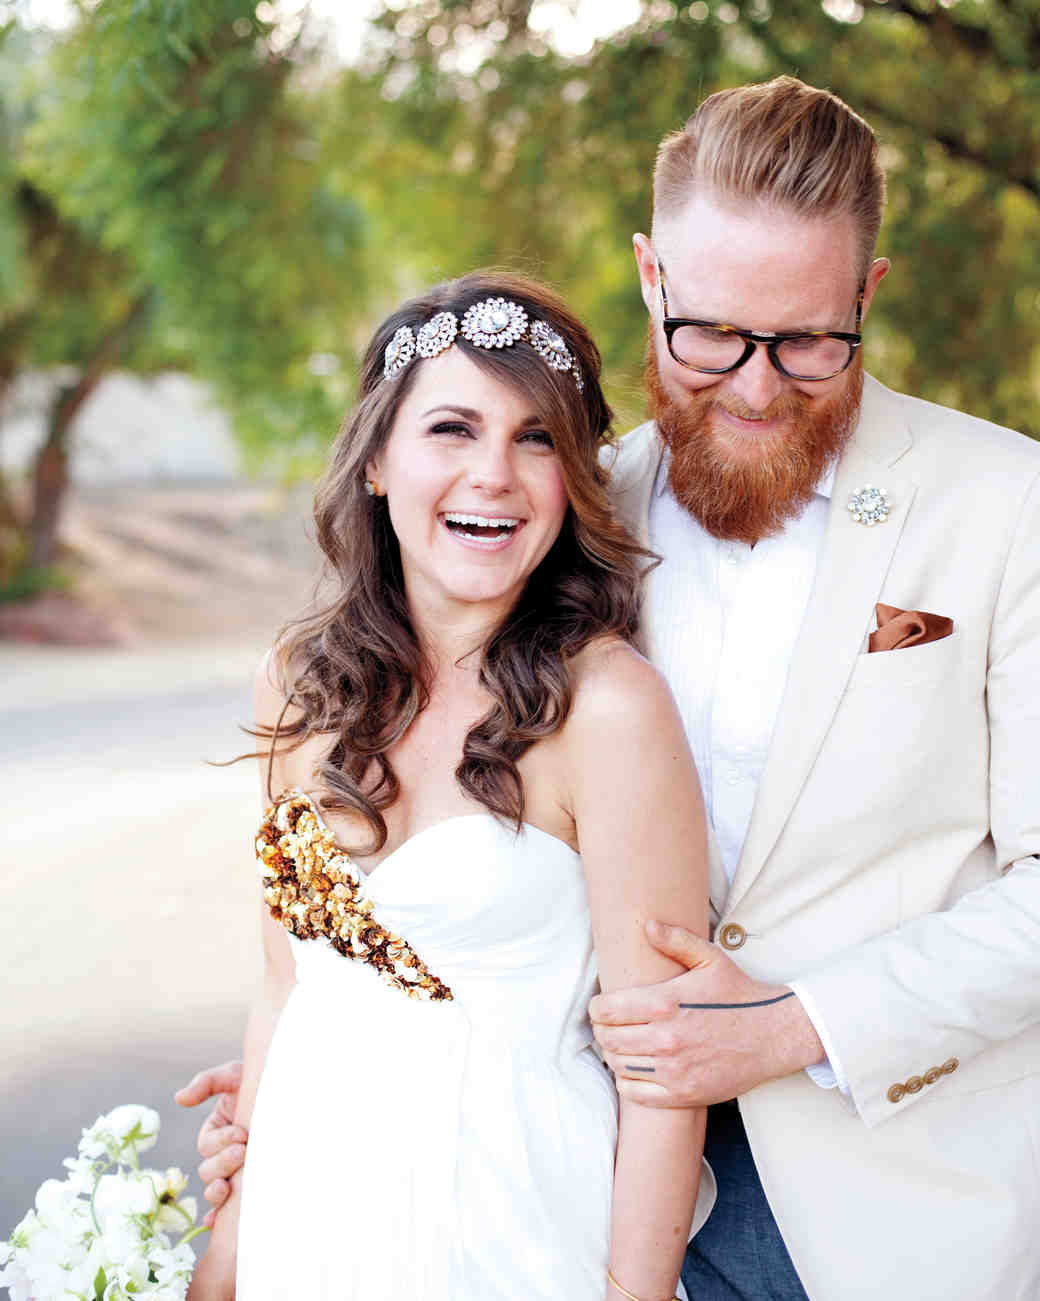 edyta-jared-wedding-220-d110939.jpg